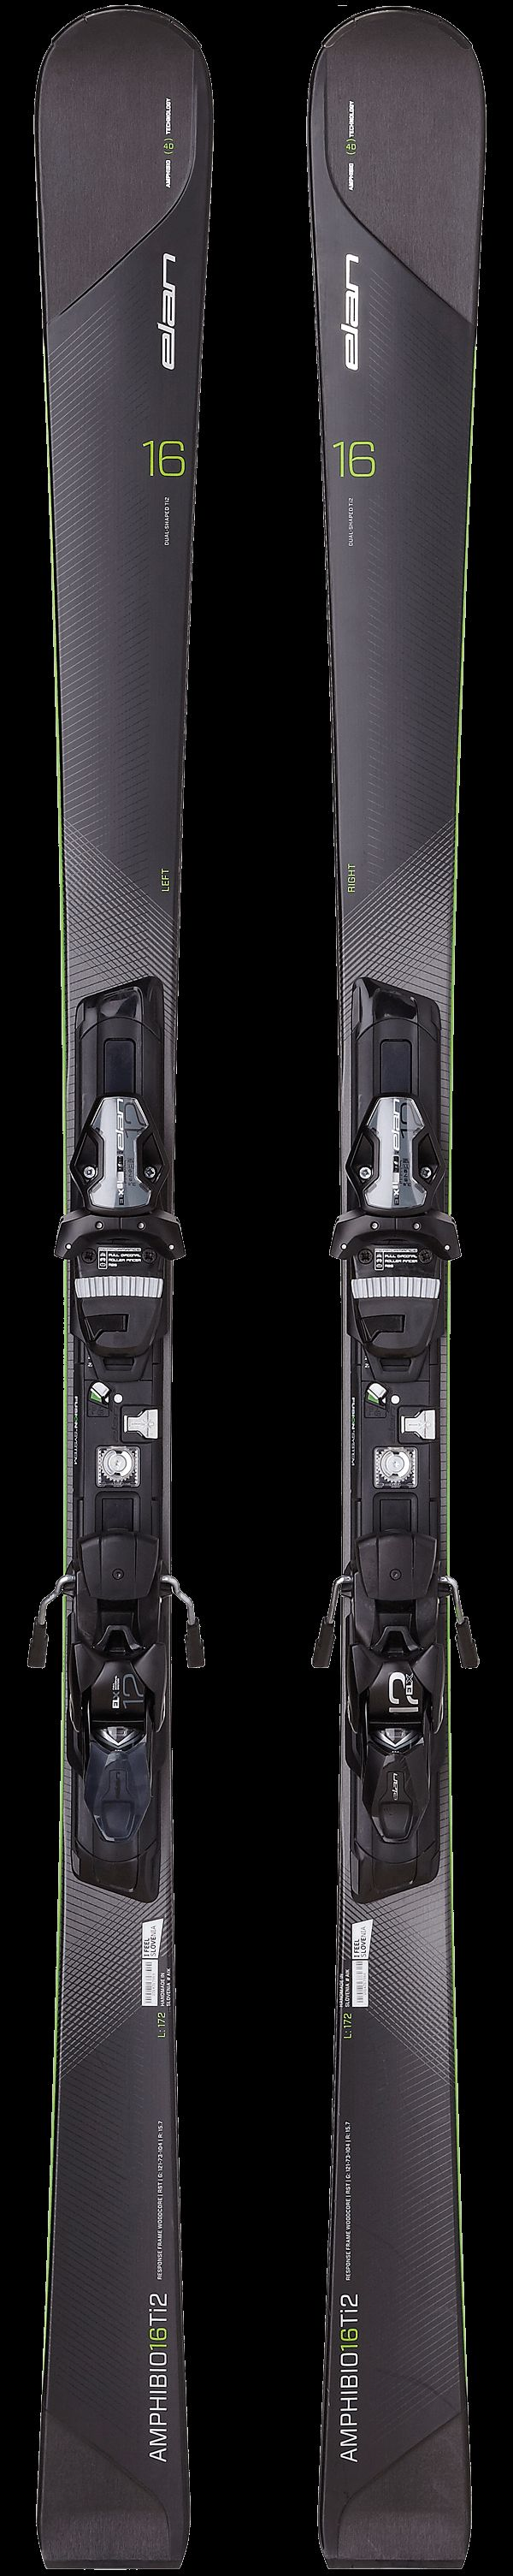 Amphibio 4D - Elan Skis - The most awarded series on the market and the core of our ski collection.